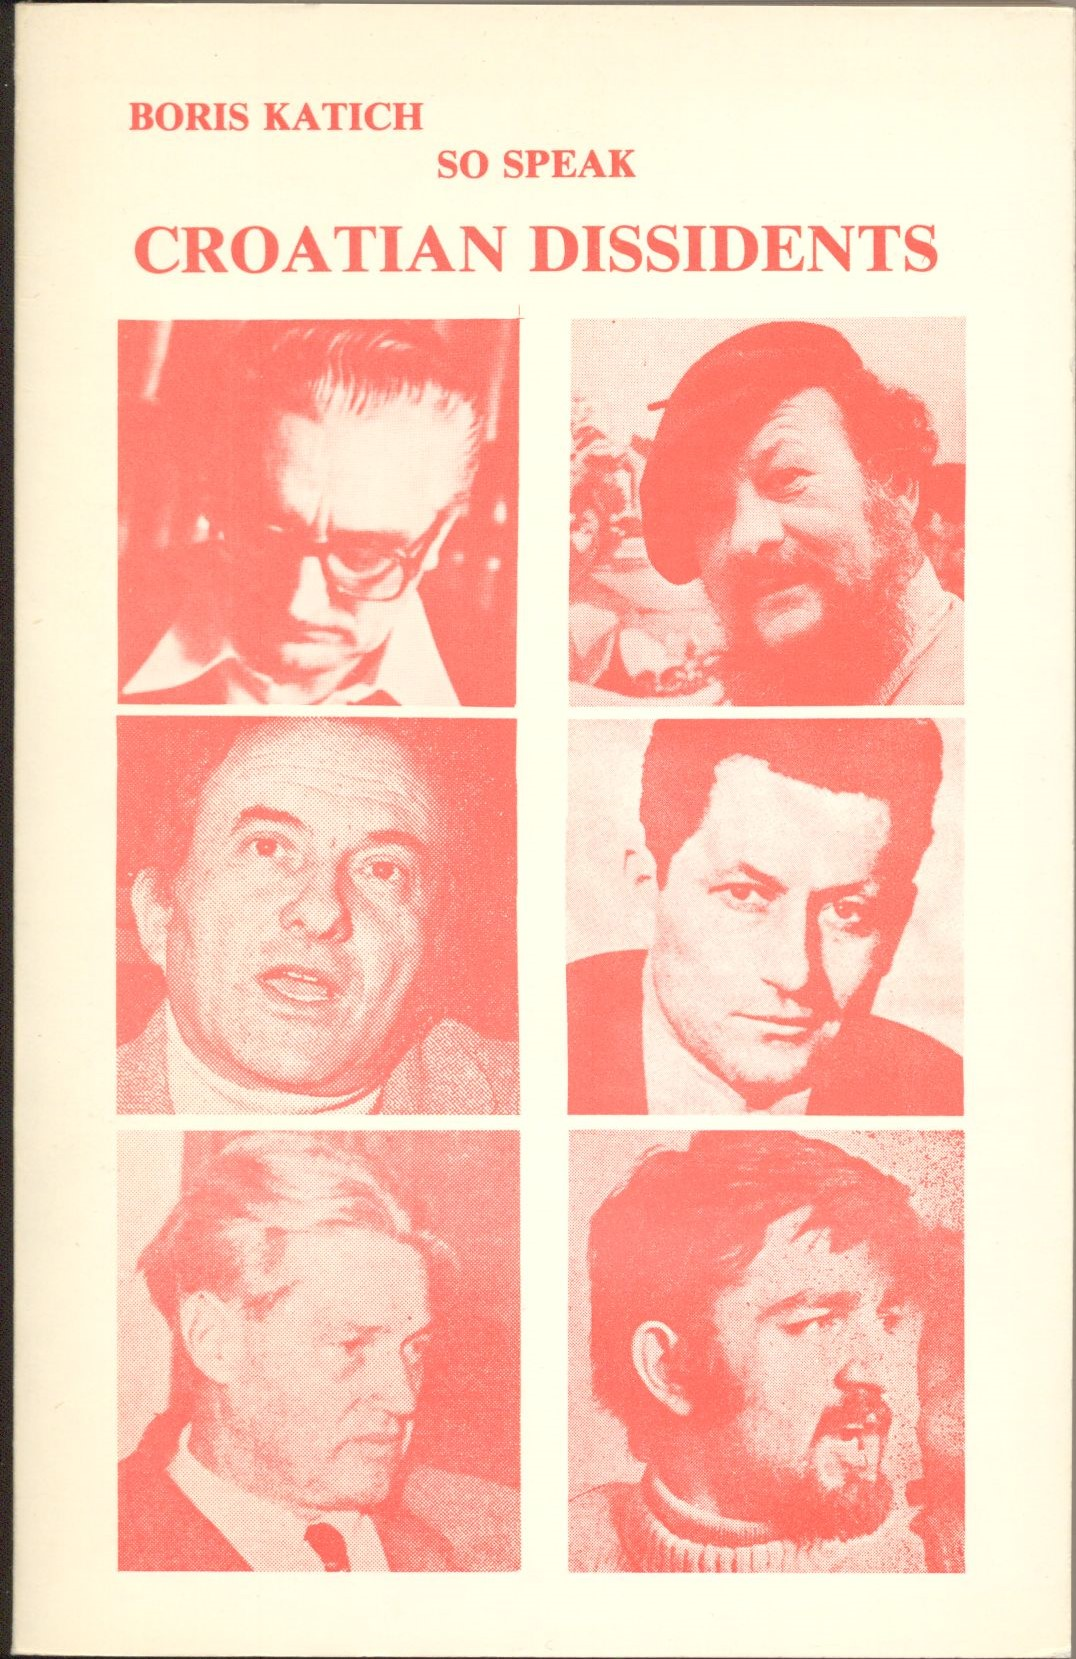 Šimun Šito [Boris Katich]. So speak Croatian dissidents, 1983. Book cover